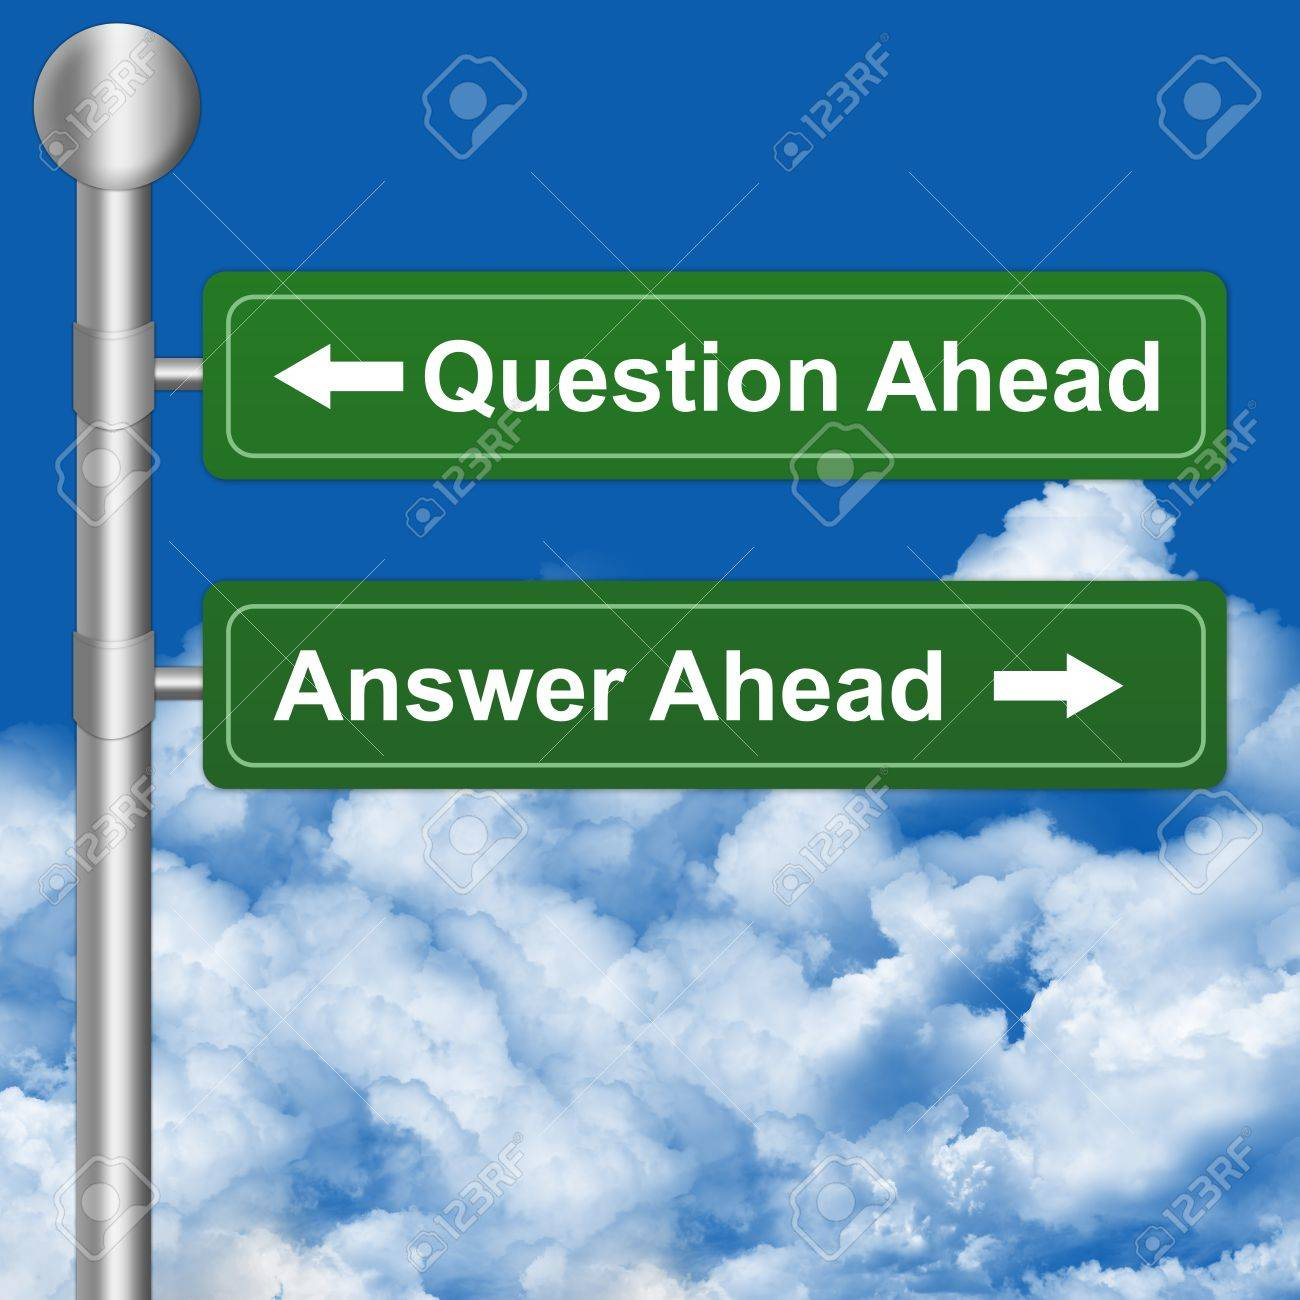 2 Choices With Question Ahead or Answer Ahead Highway Street Sign Stock Photo - 14670932